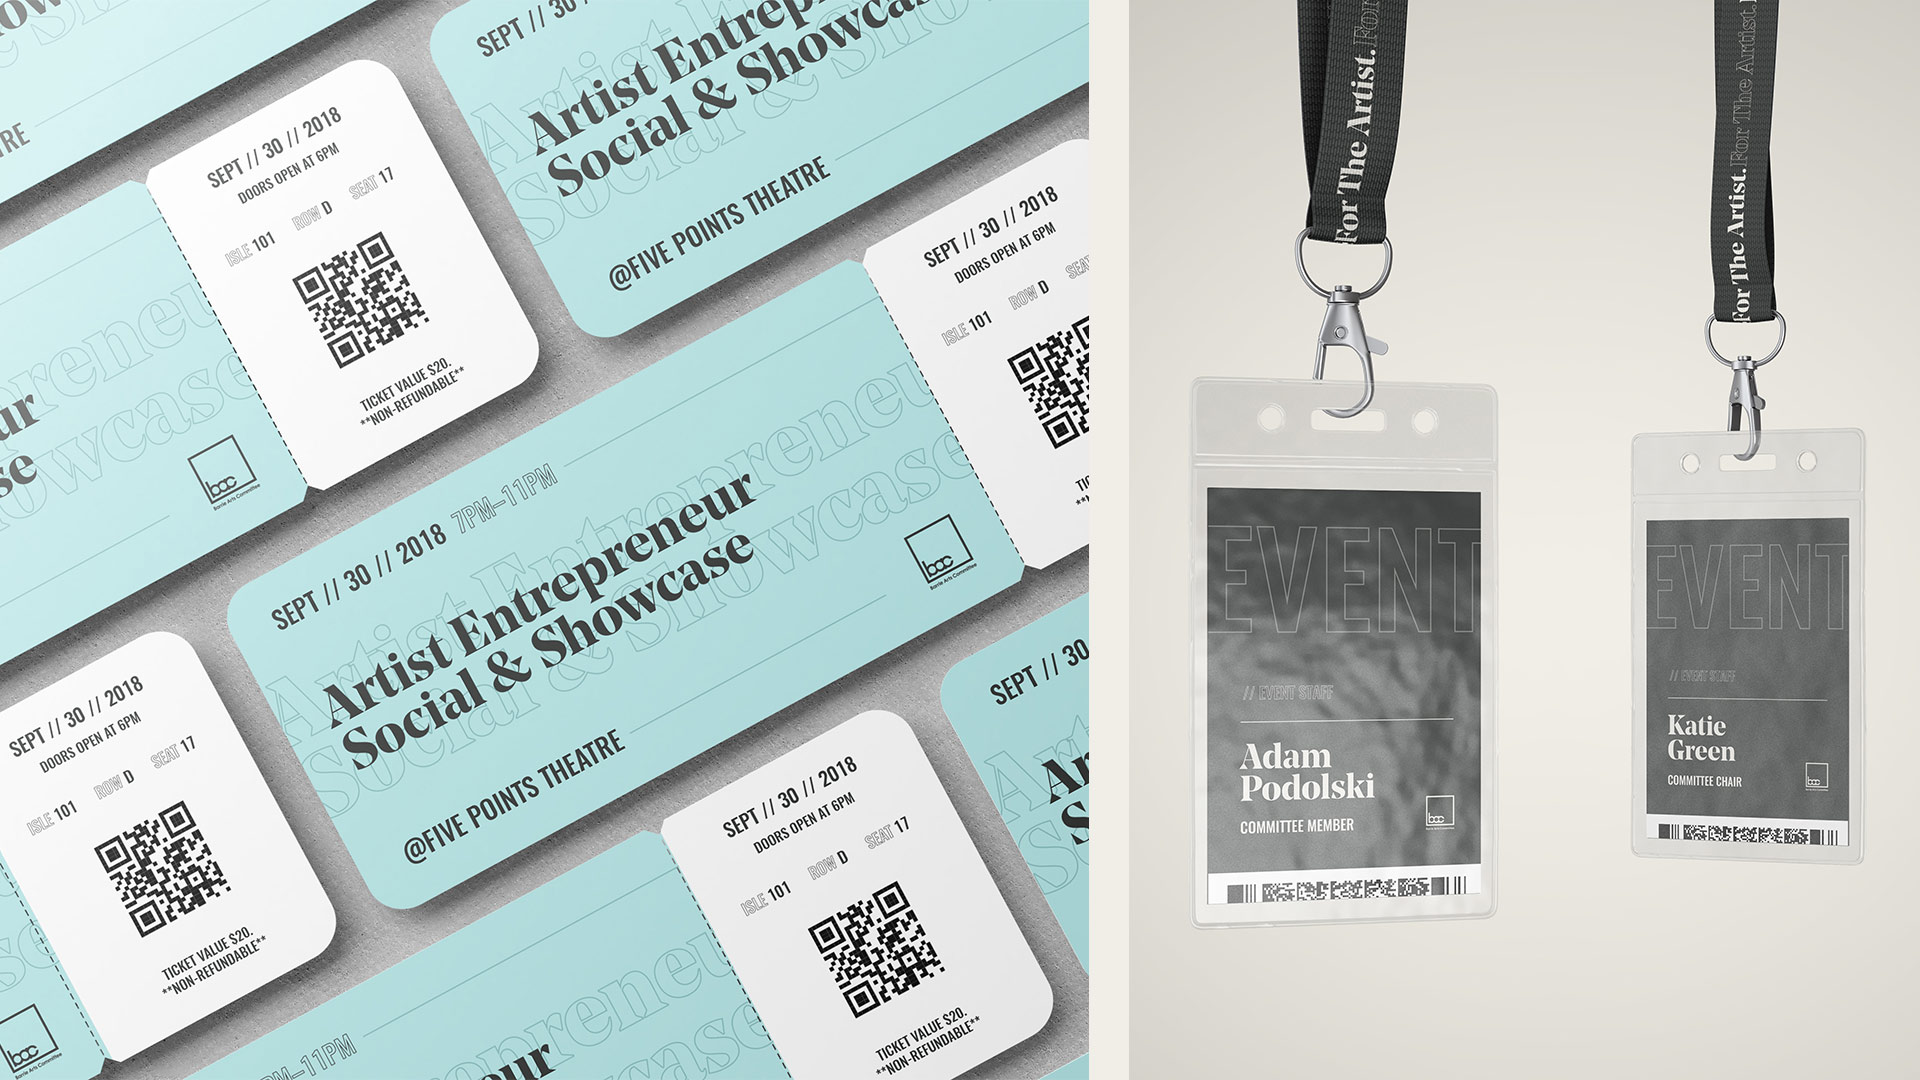 barrie arts committee event tickets and lanyard mockup